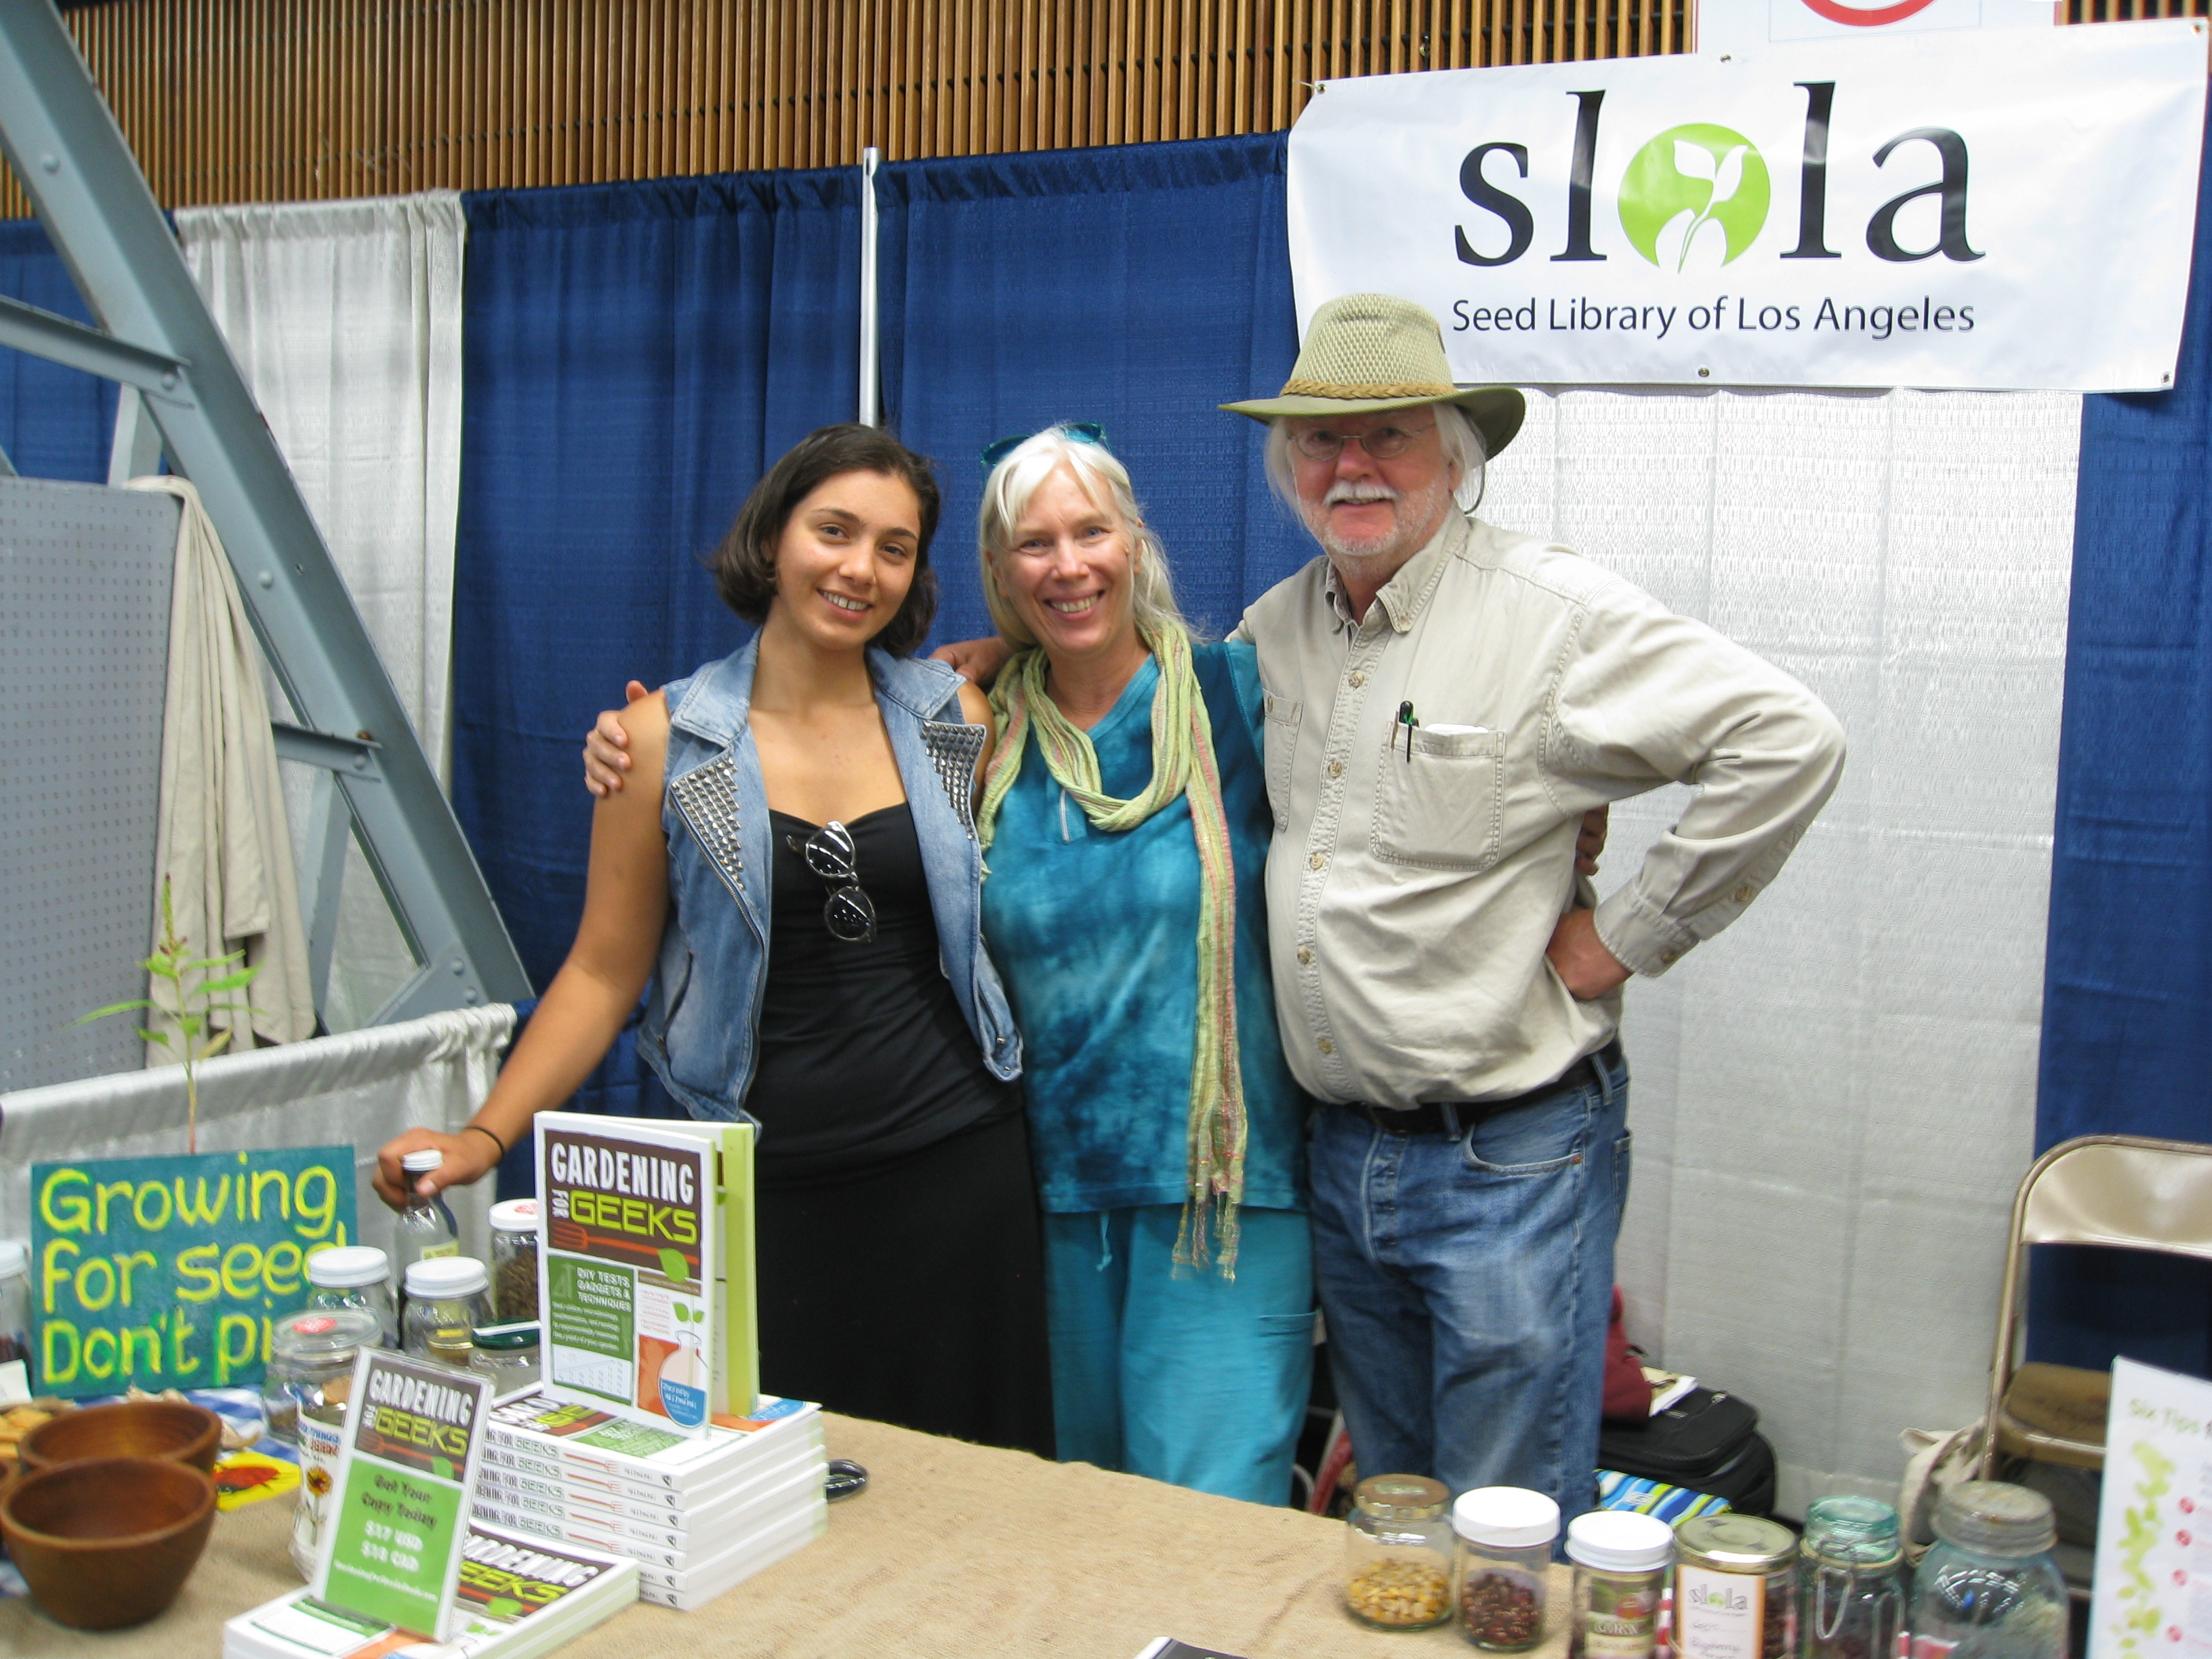 Friends at the SLOLA booth: HQ for Gardenerd this week.